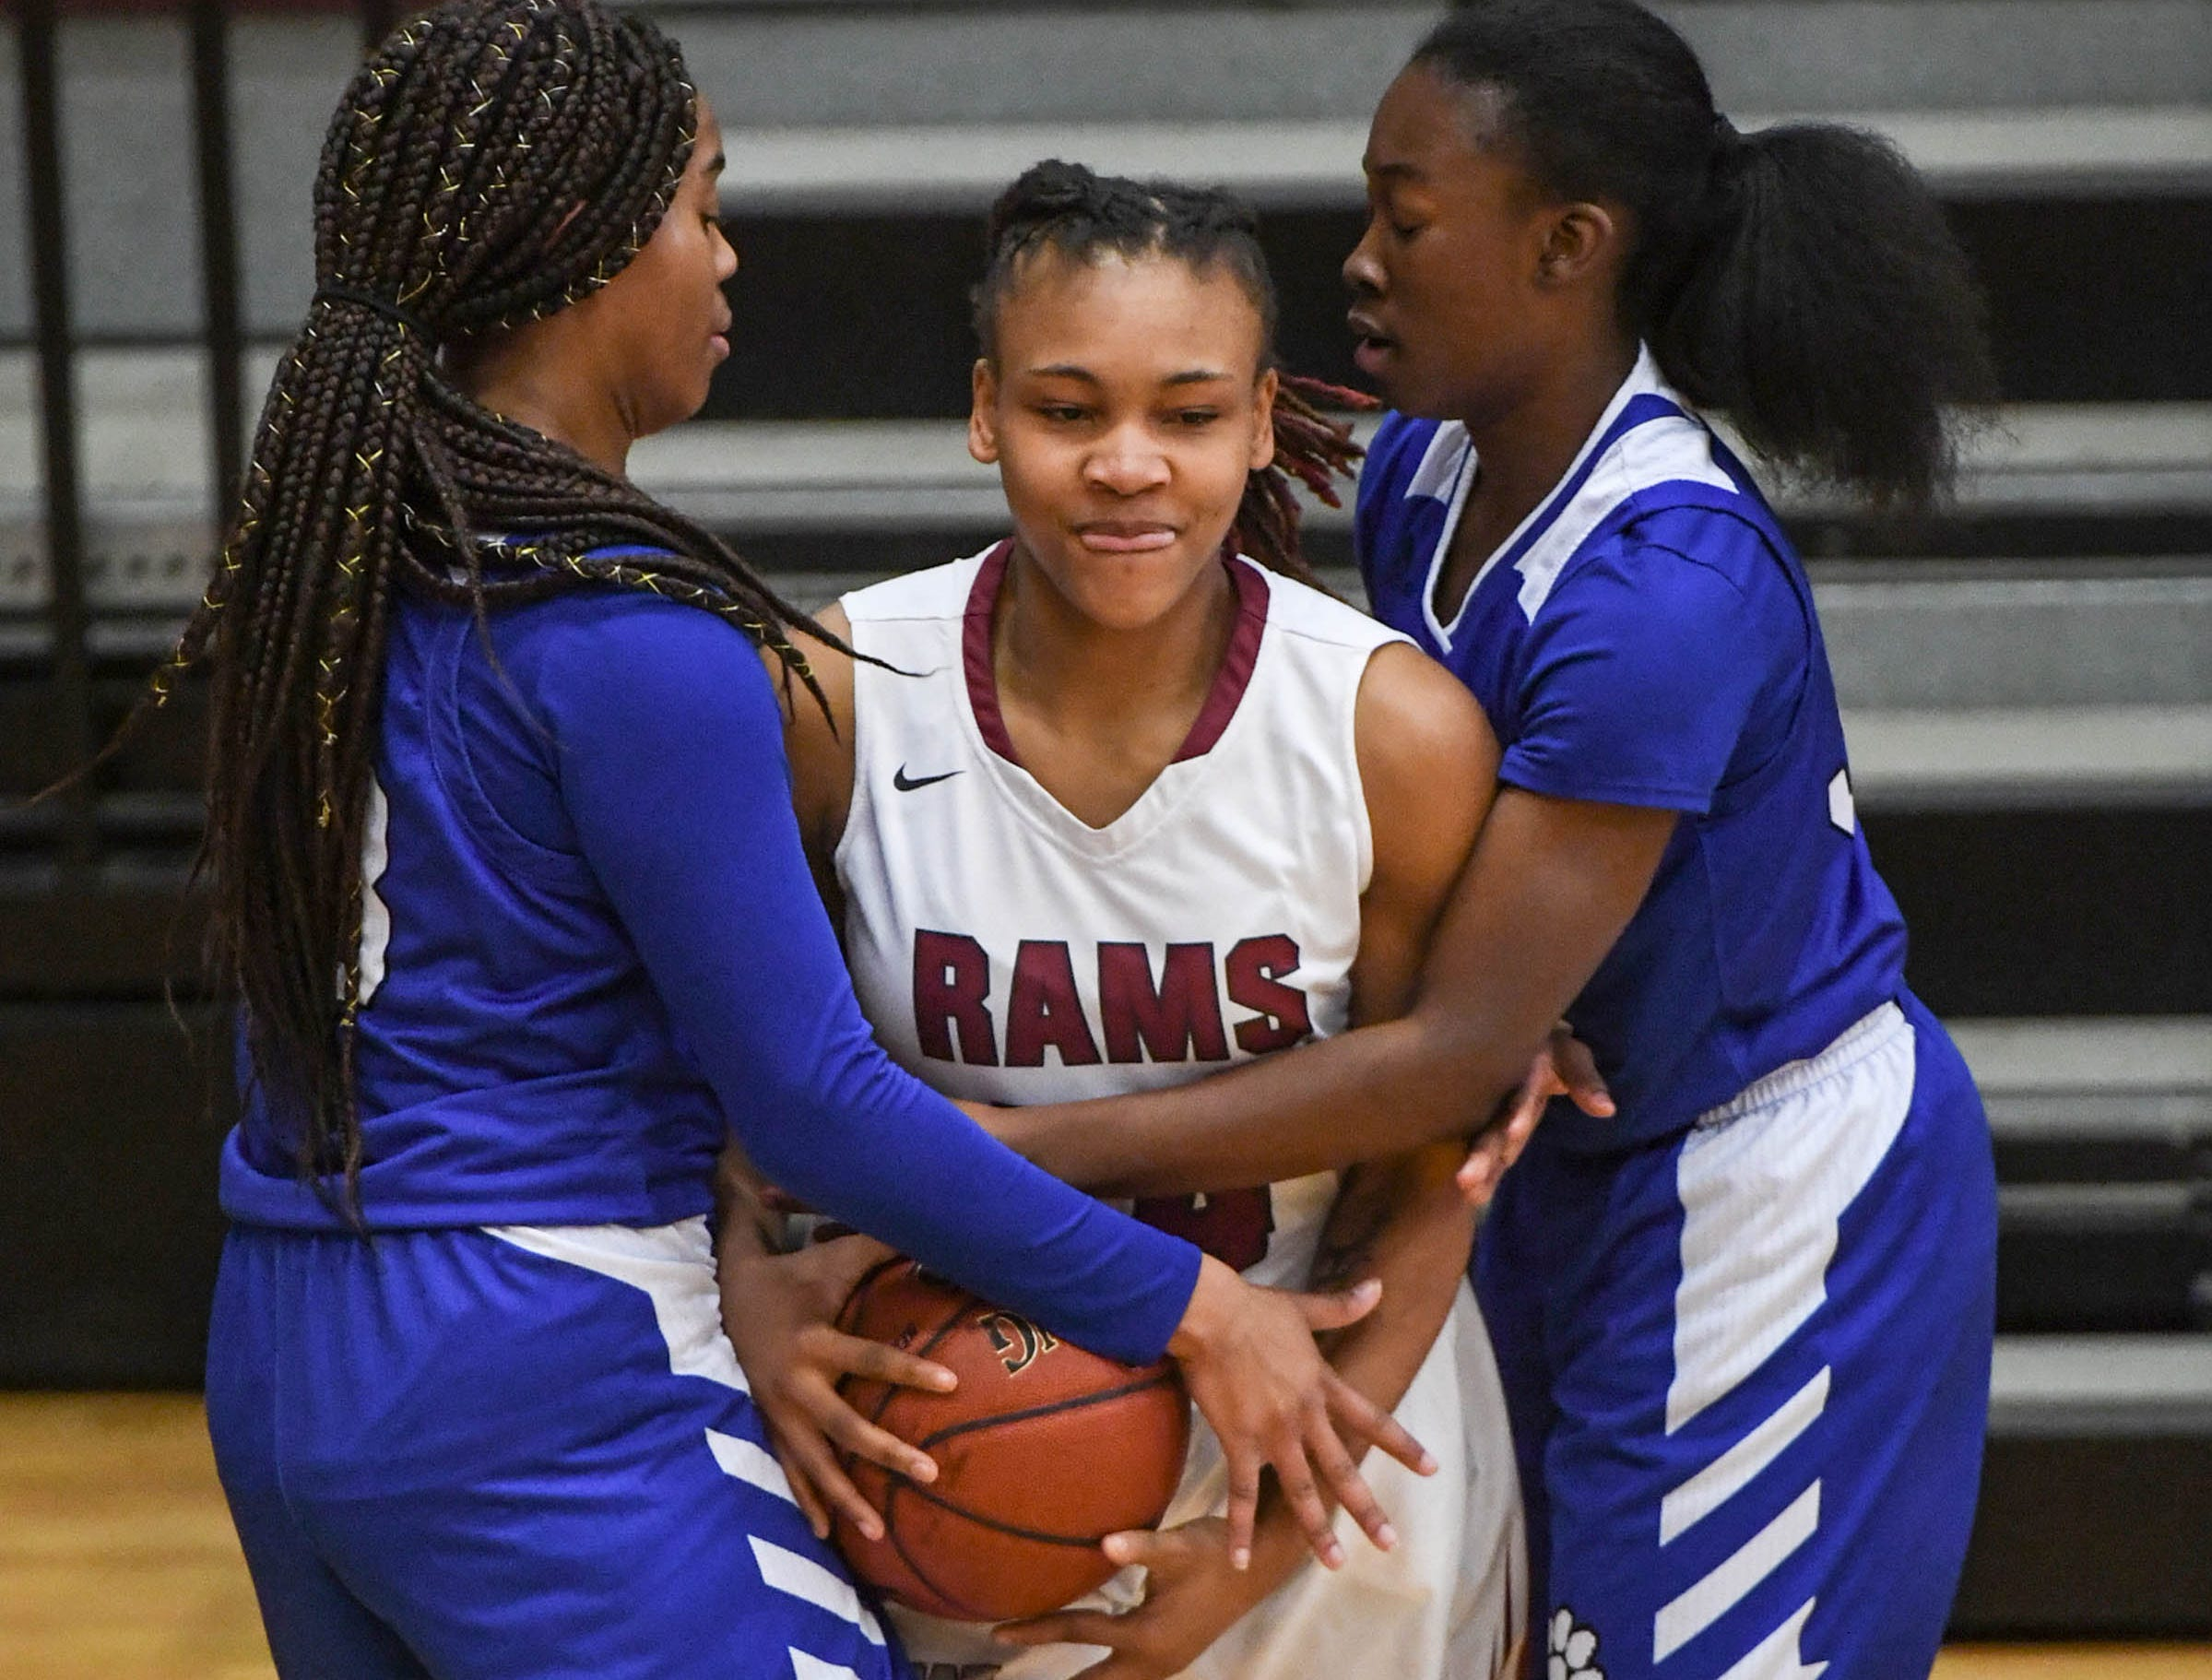 Westside junior Tatyana Lewis(14) is trapped by Woodmont senior Kitara Henry(33), left, and Woodmont junior JaRae Smith(30), right, during the first quarter at Westside High School in Anderson on Tuesday.